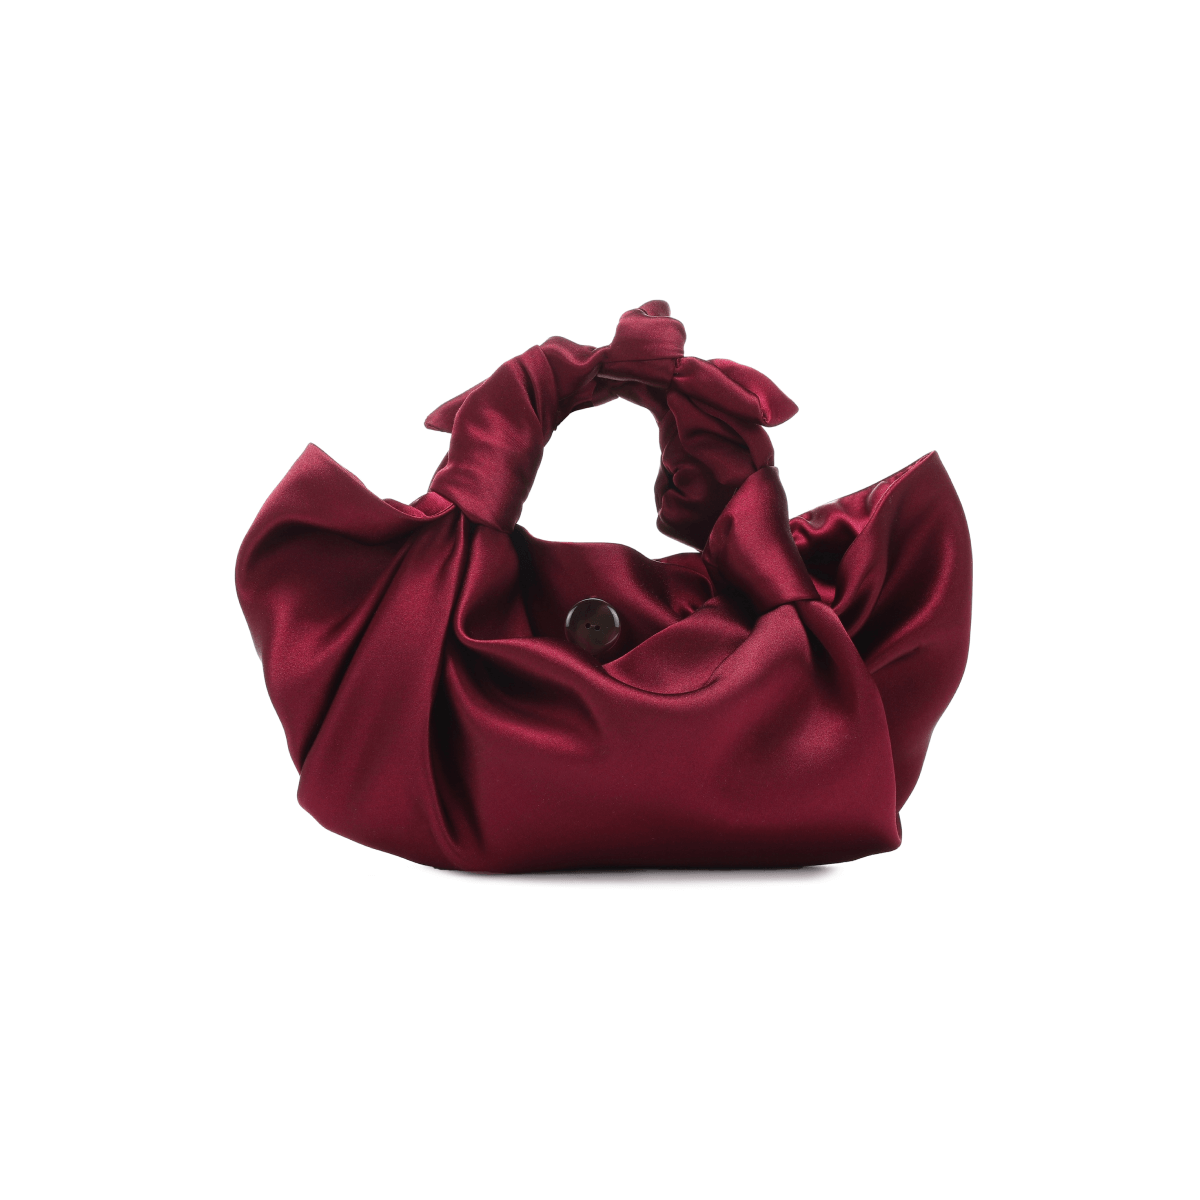 The Row Bag